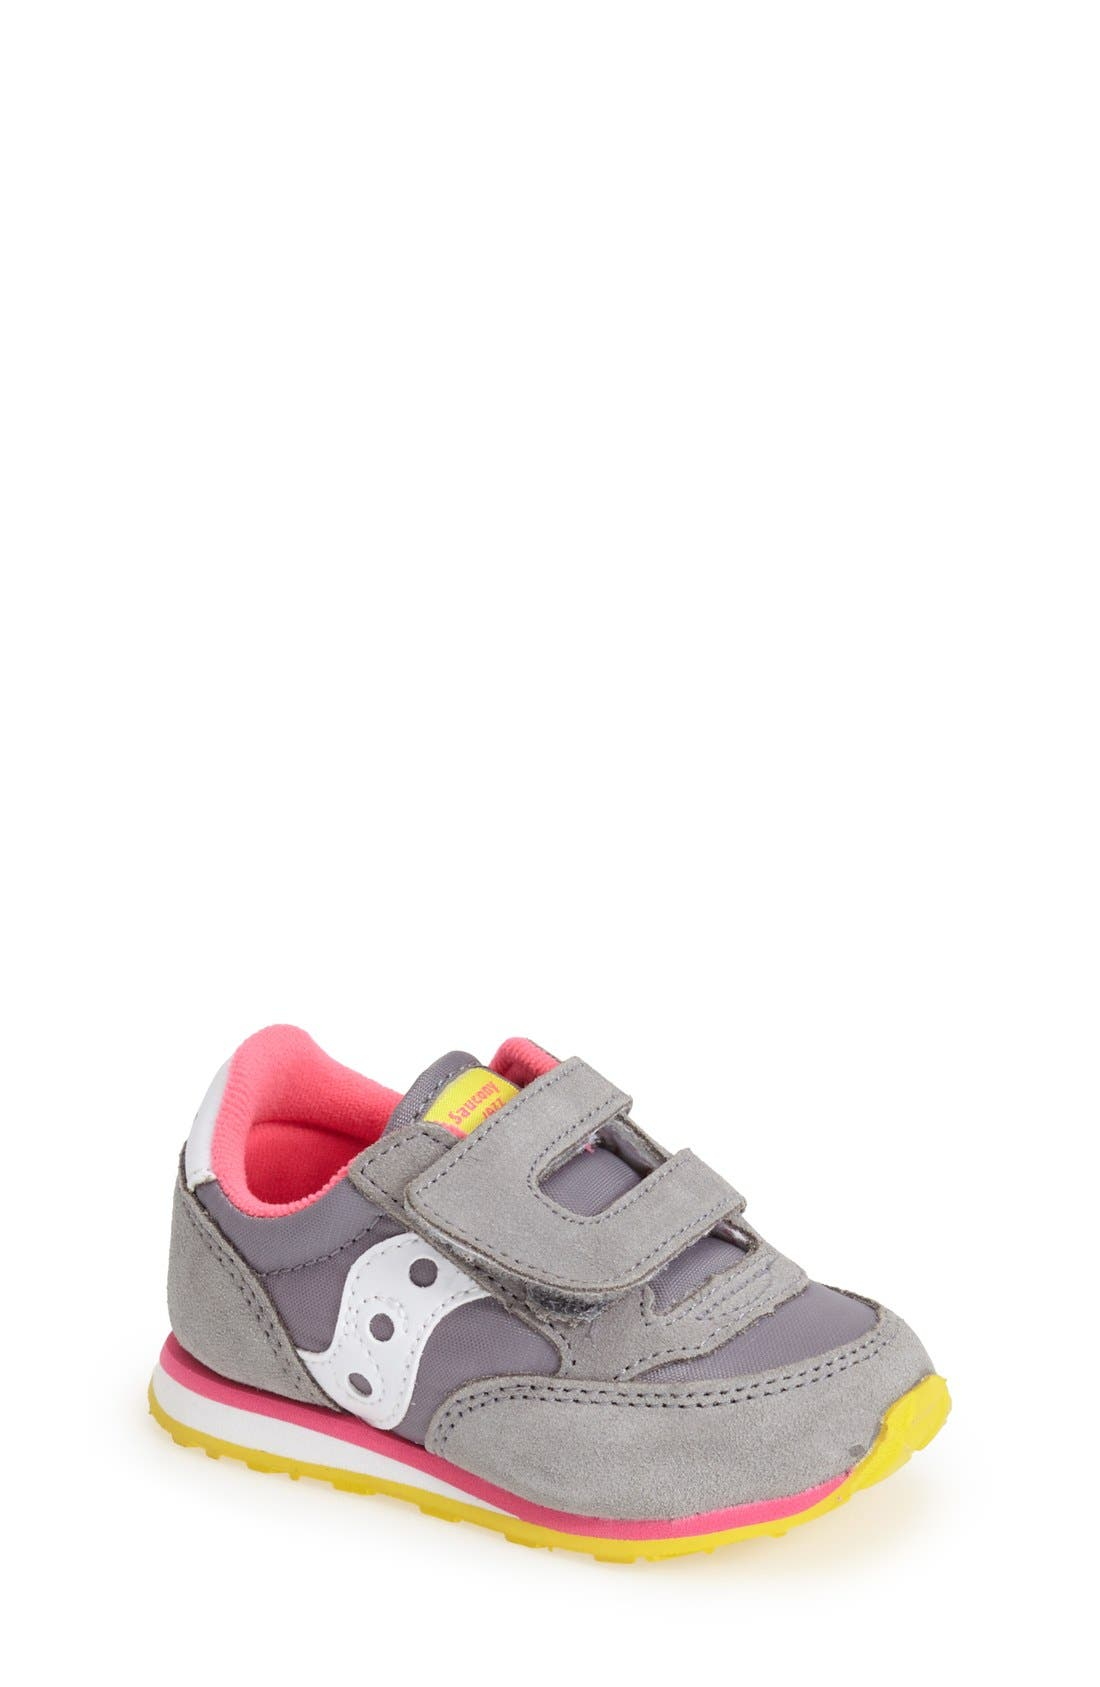 Main Image - Saucony 'Jazz' Hook & Loop Sneaker (Baby, Walker & Toddler)